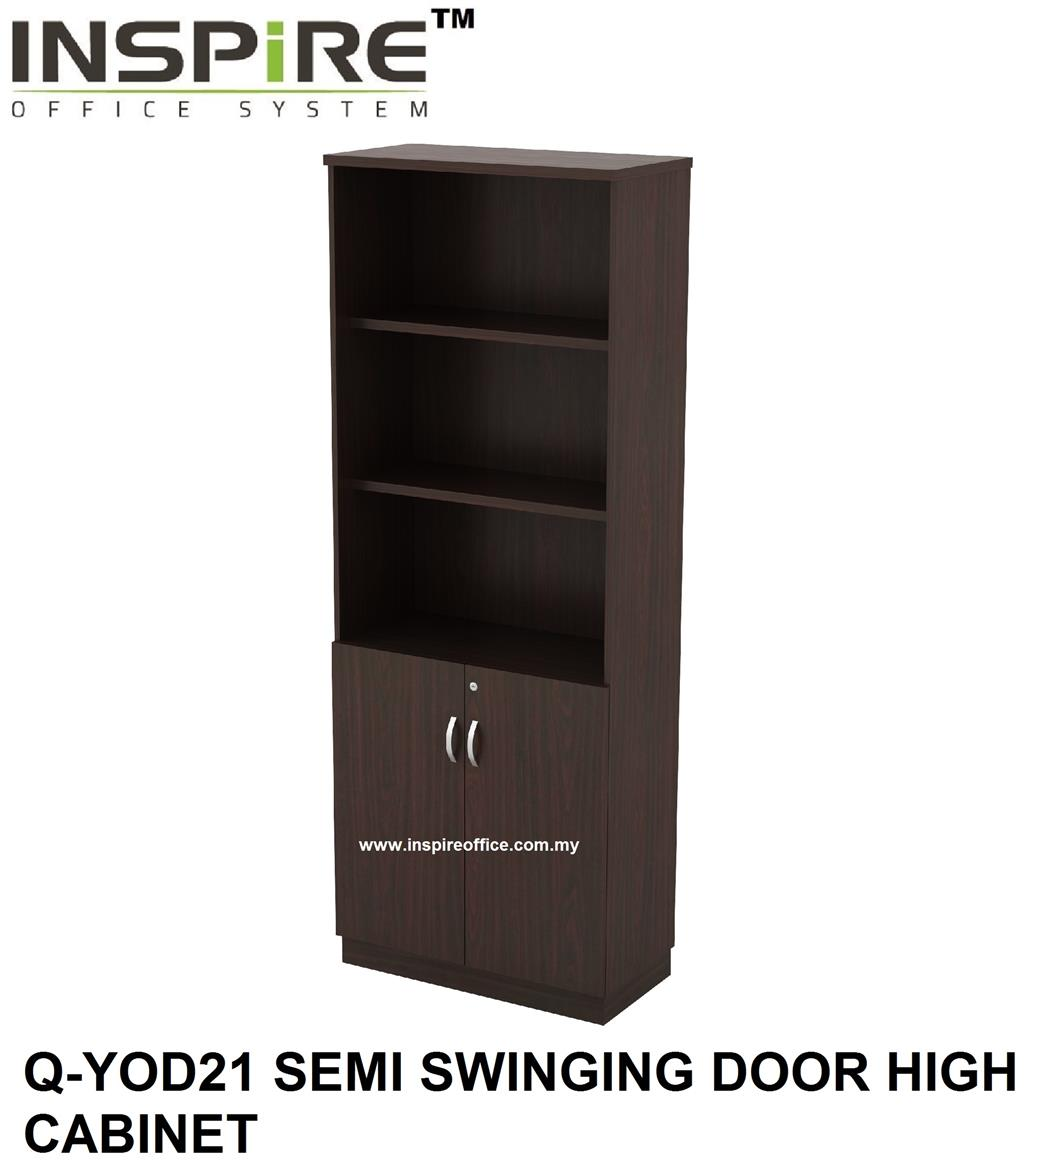 QUINN SERIES Q-YOD21 SEMI SWINGING DOOR HIGH CABINET